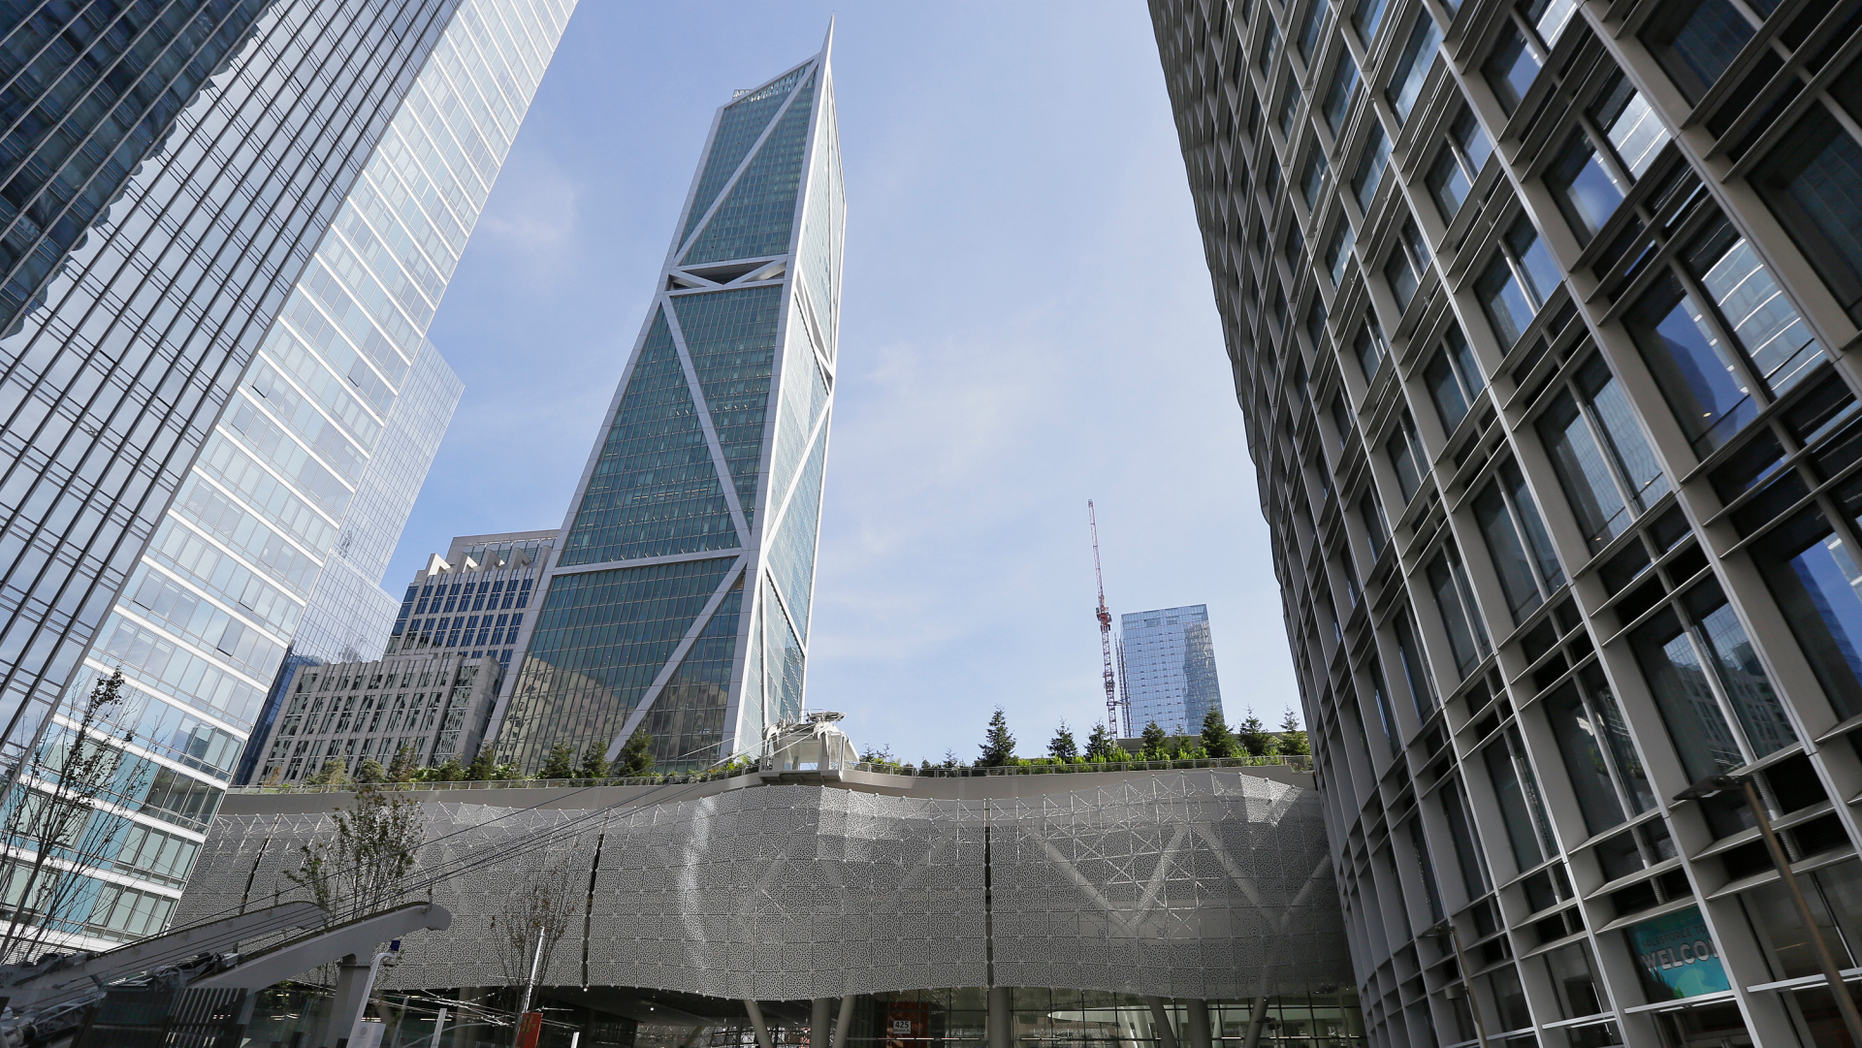 FILE--In this Sept. 27, 2018, file photo, people walk through main plaza entryway to the closed Salesforce Transit Center in San Francisco. As two of the city's most vaunted buildings sink or crack, an earthquake study released Thursday, Oct. 4,  recommended re-inspecting dozens of high-rises and beefing up construction codes for the growing crop of skyscrapers in the booming city. (AP Photo/Eric Risberg, file)